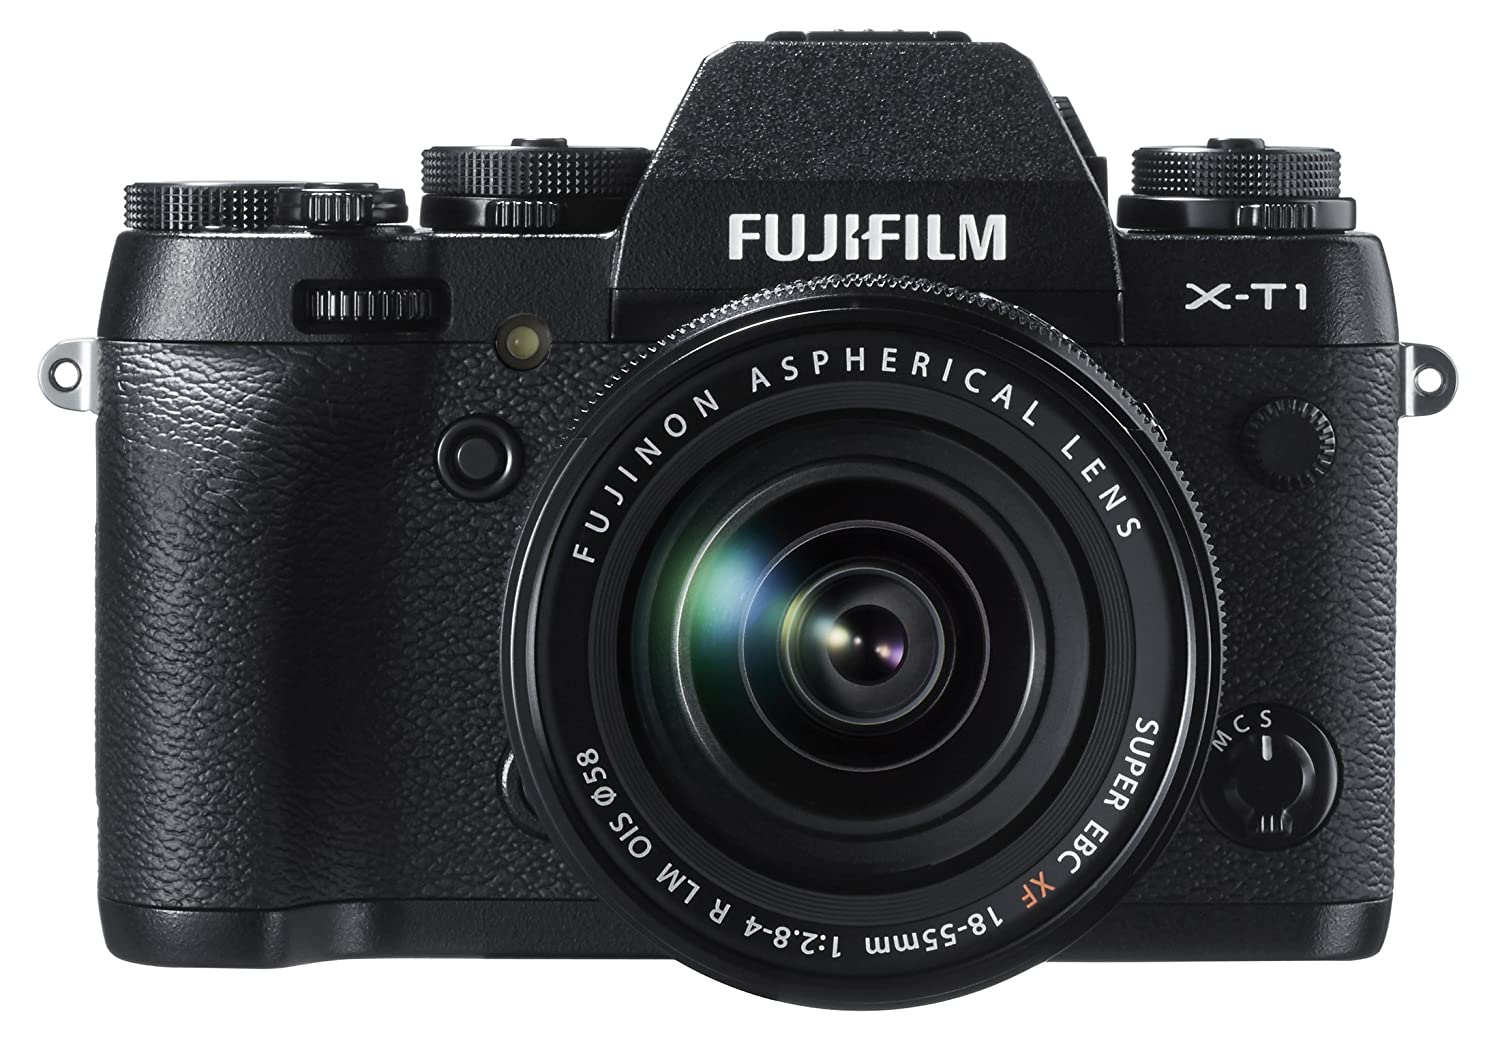 Amazon.com : Fujifilm X-T1 16 MP Mirrorless Digital Camera with 3.0-Inch  LCD and XF18-55mm F2.8-4.0 R LM OIS Lens (Old Model) : Camera & Photo